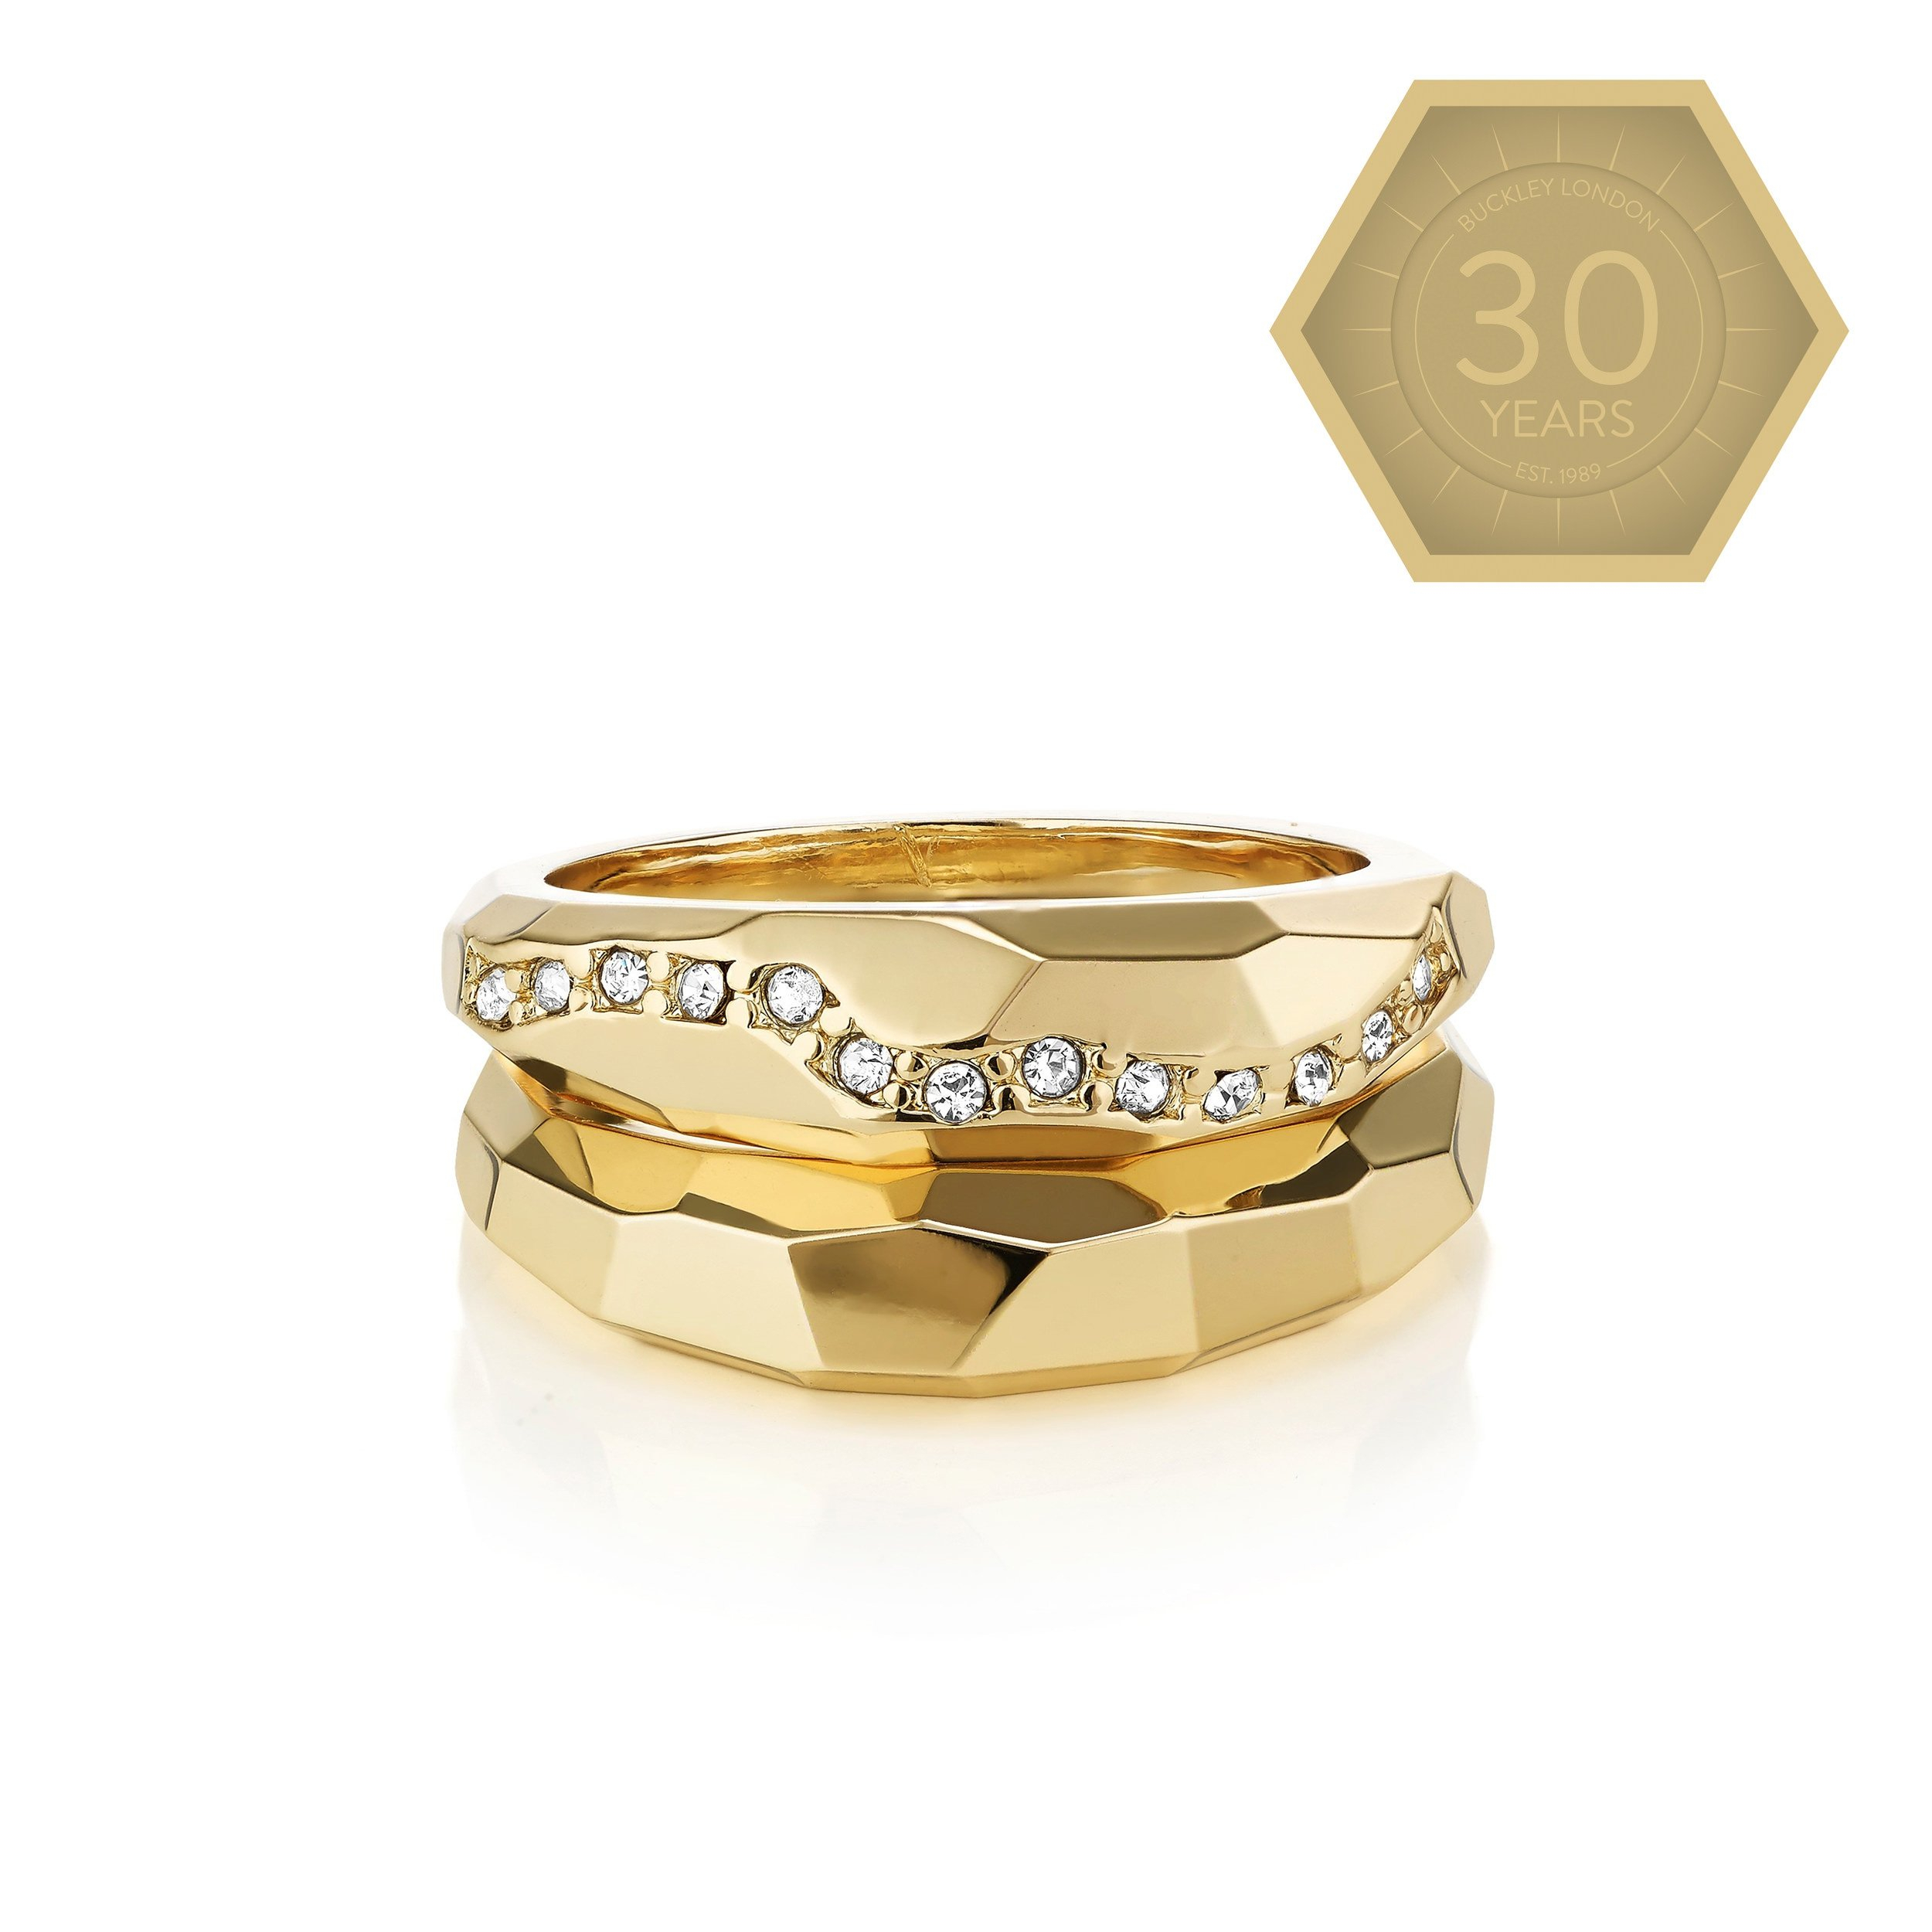 Legacy Stacker Rings Intended For Most Recent Multifaceted Rings (View 12 of 25)